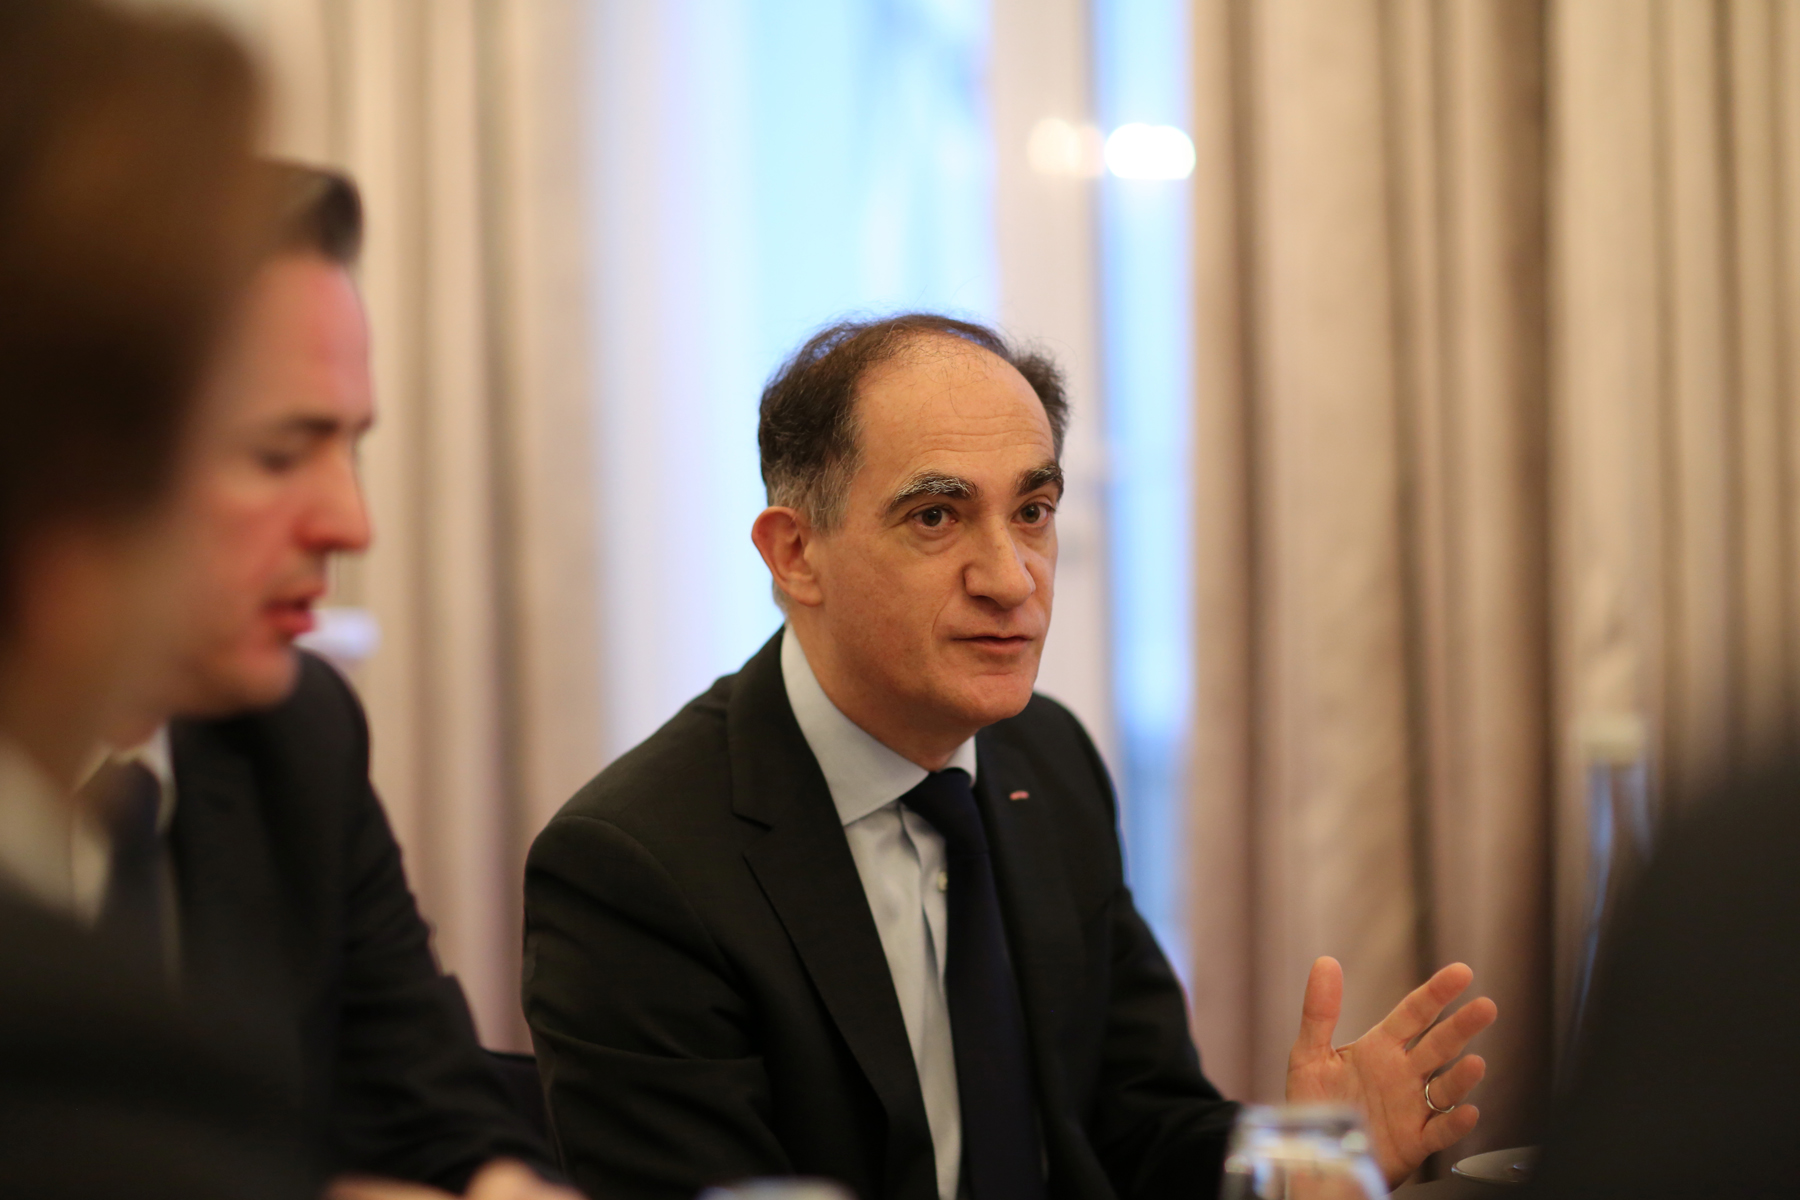 Jean Castellini, the Government Minister for Finance and Economy